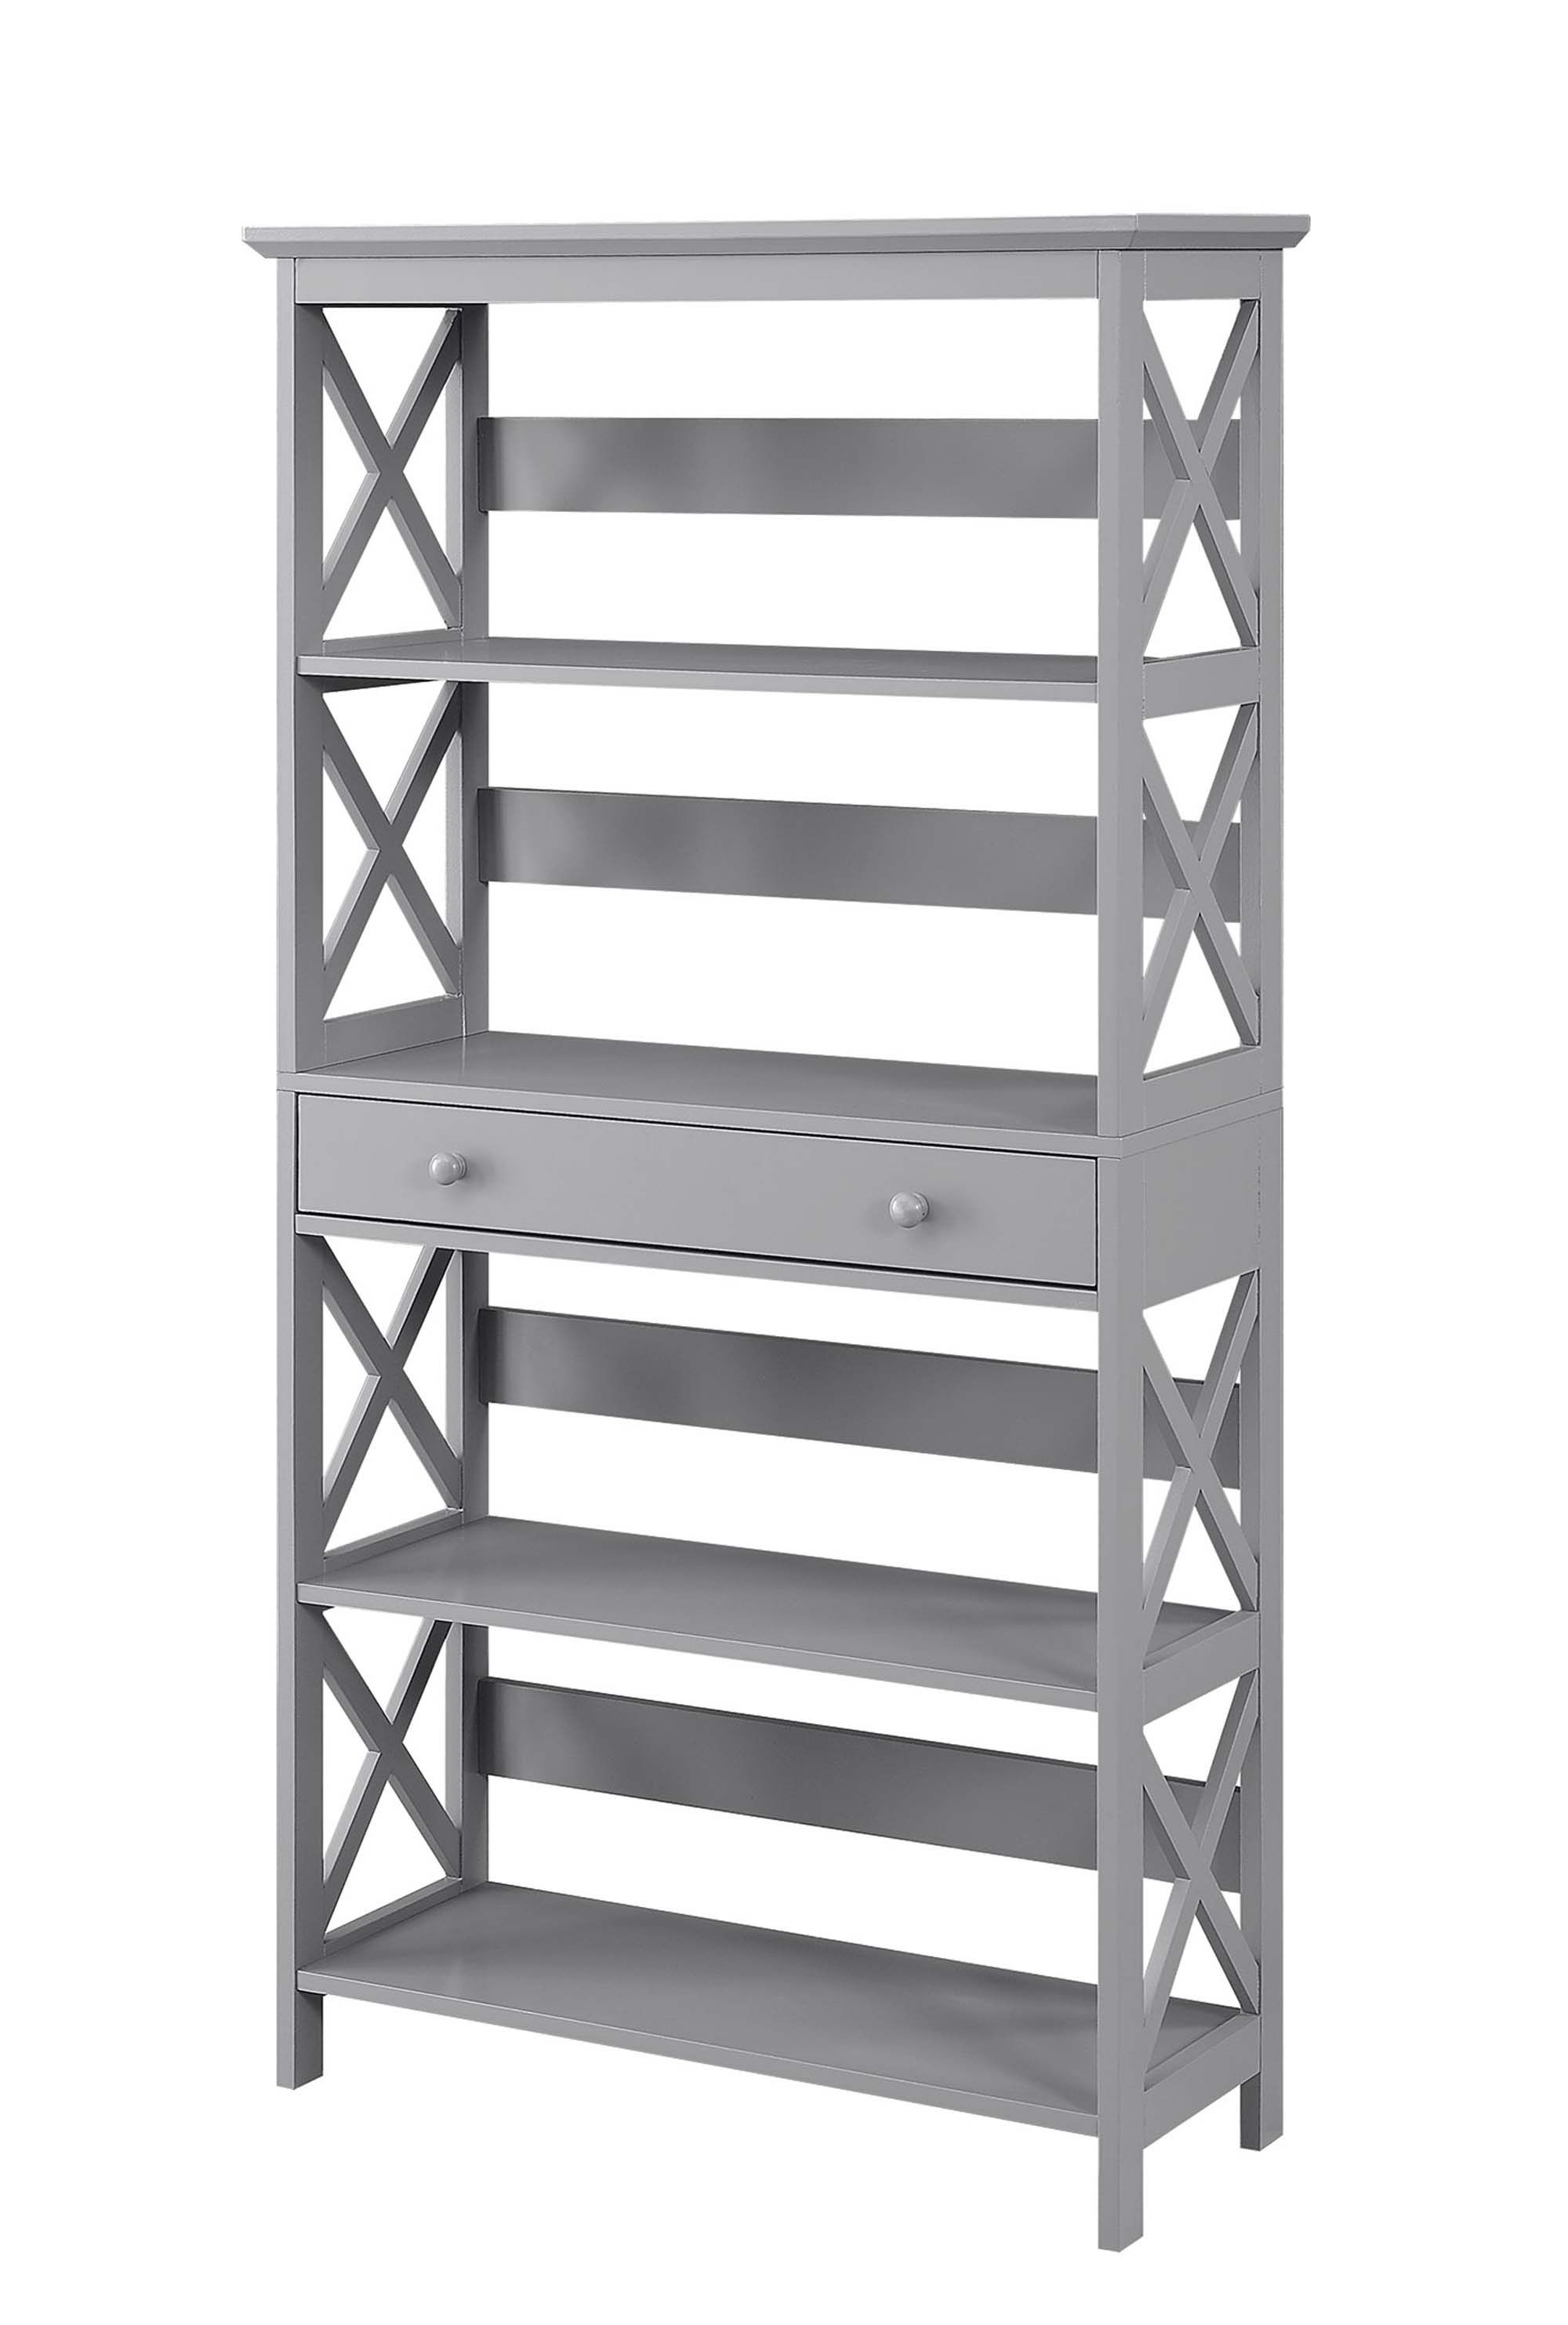 Oxford 5 Tier Bookcase With Drawer In Gray Convenience Concepts 203051gy Bookcase With Drawers Bookcase Etagere Bookcase